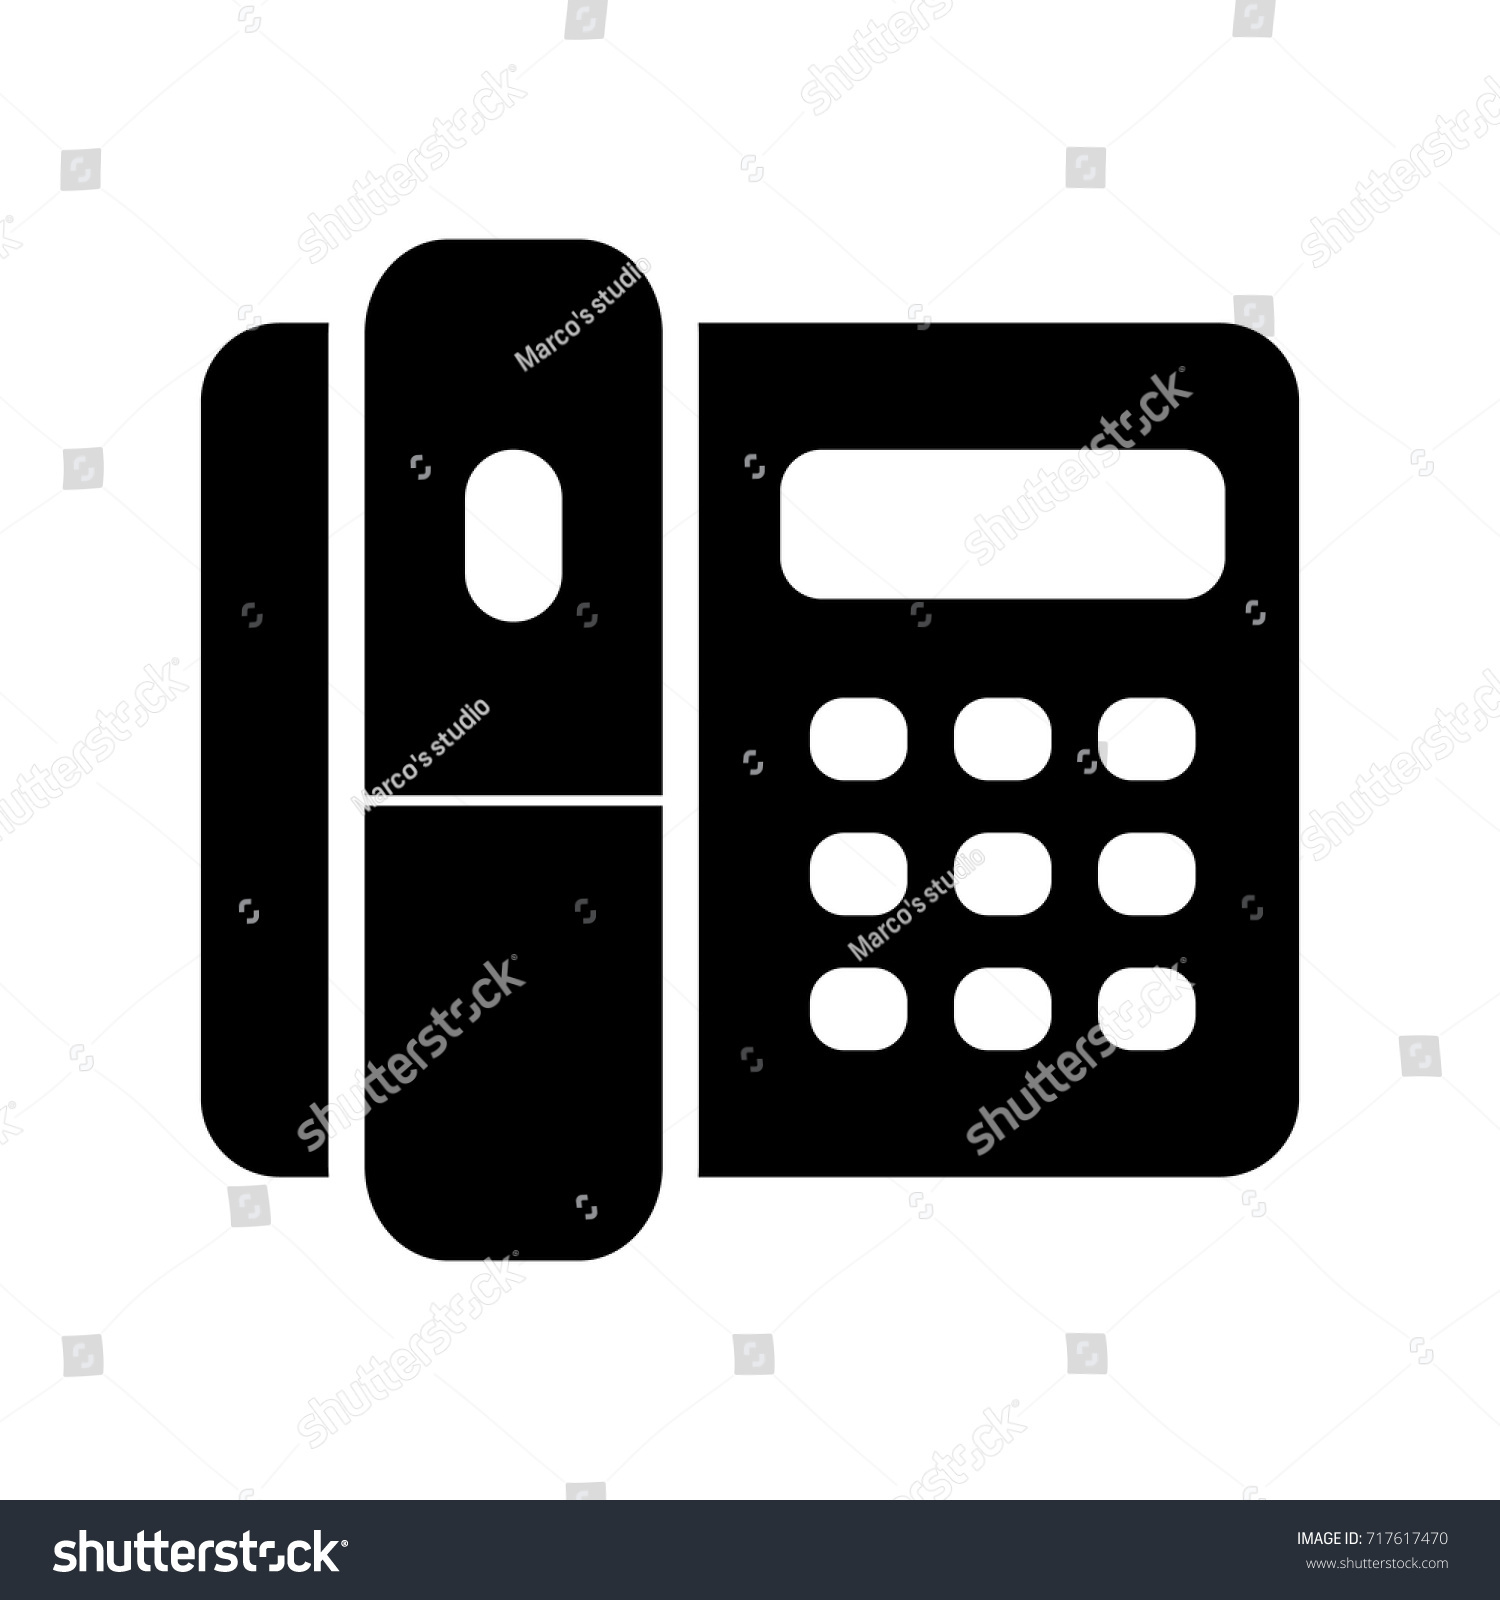 Home Phone Vector Icon Stock Vector Royalty Free 717617470